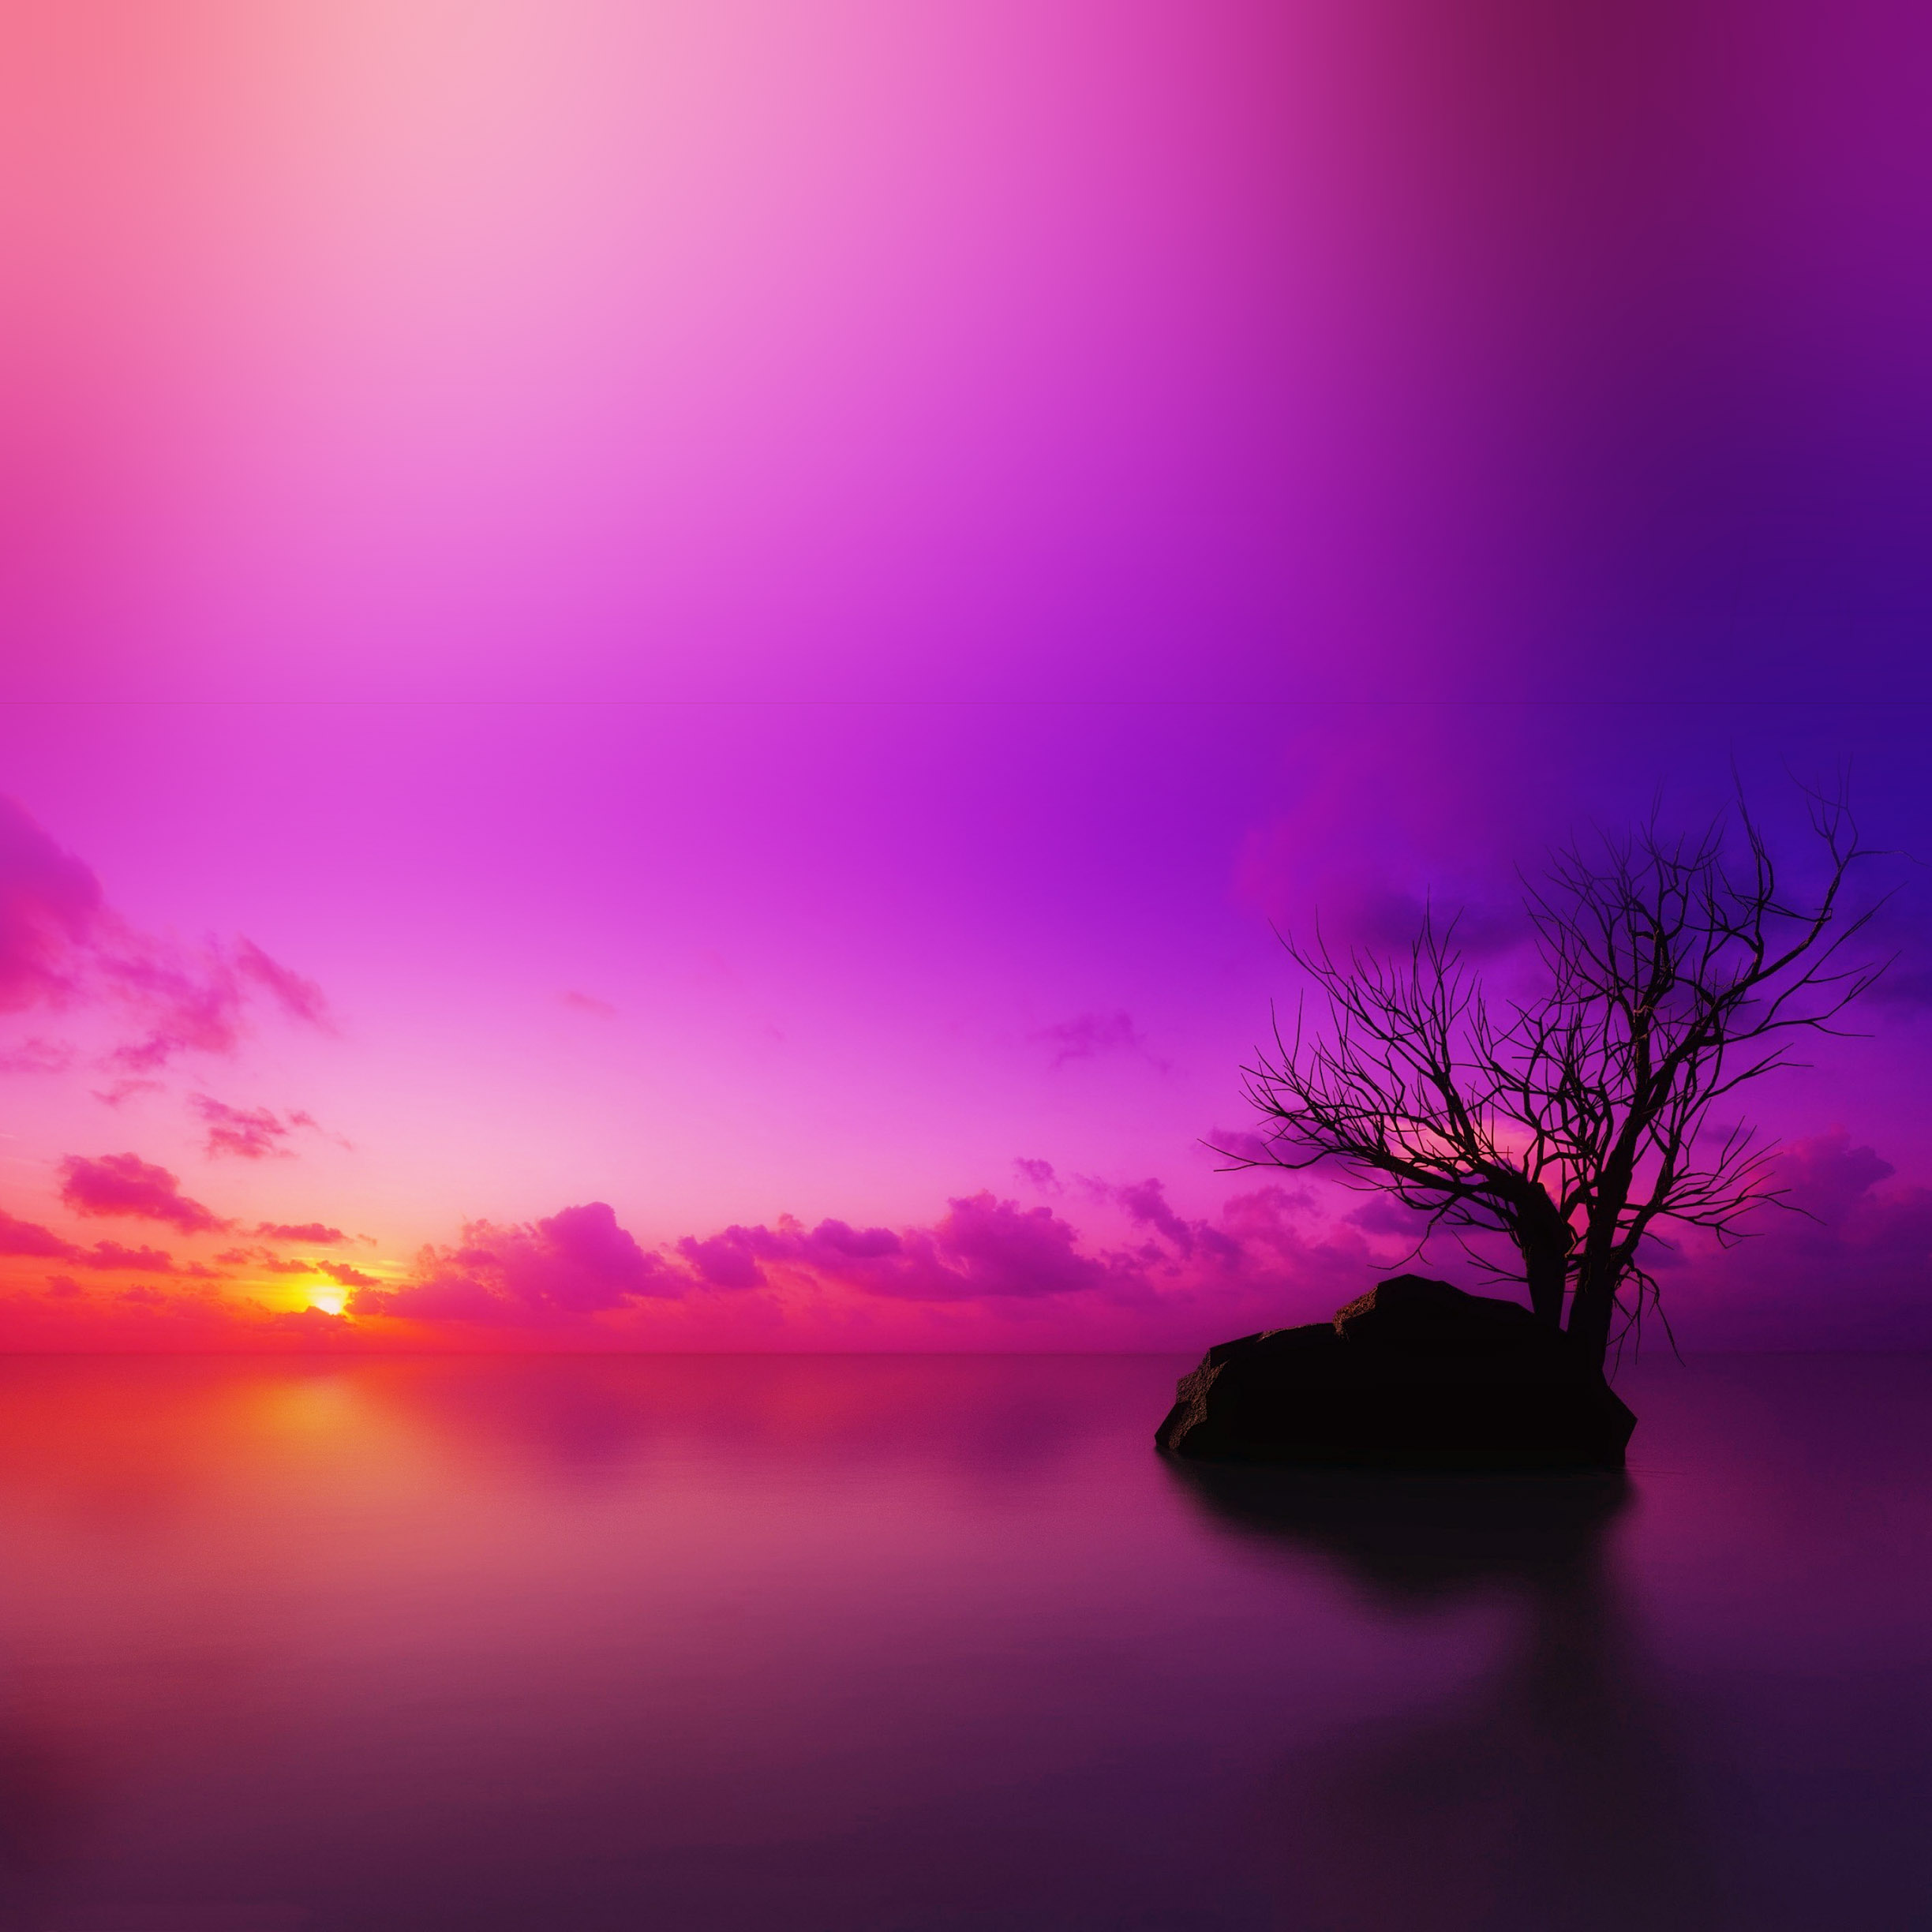 apple_wallpaper_maldivian-sunset-red_ipad_retina_parallax